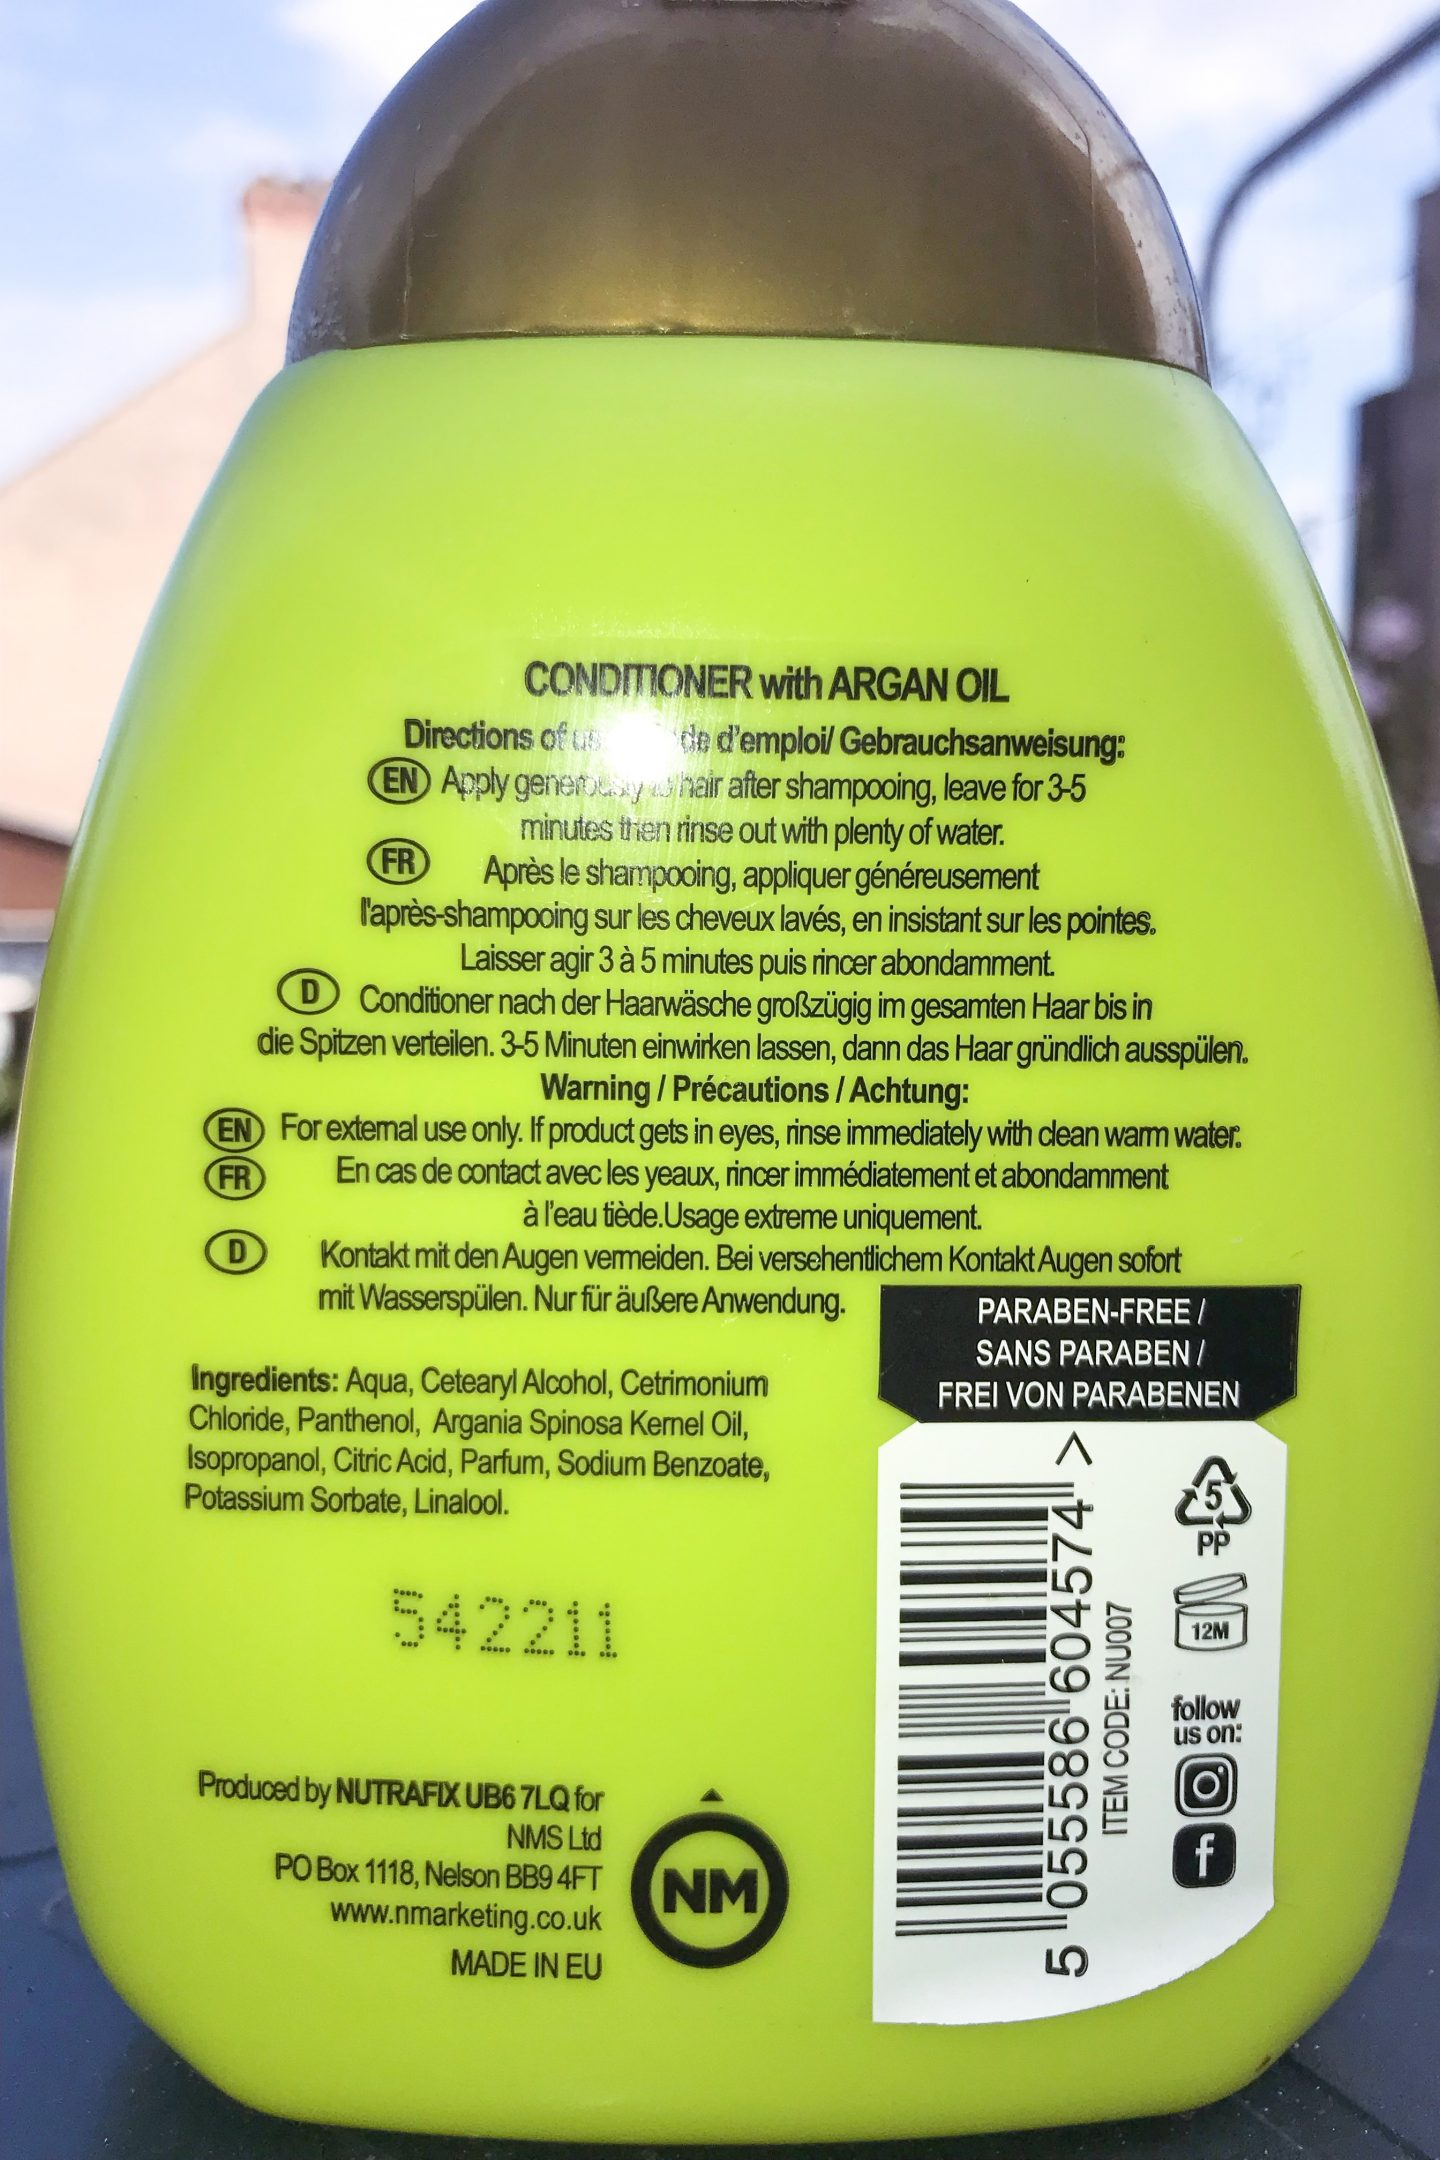 Nutrafix ingredients of conditioner 1440x2160 - Co-Washing - 4 steps to Ultra Moisturised Relaxed Hair [Video]